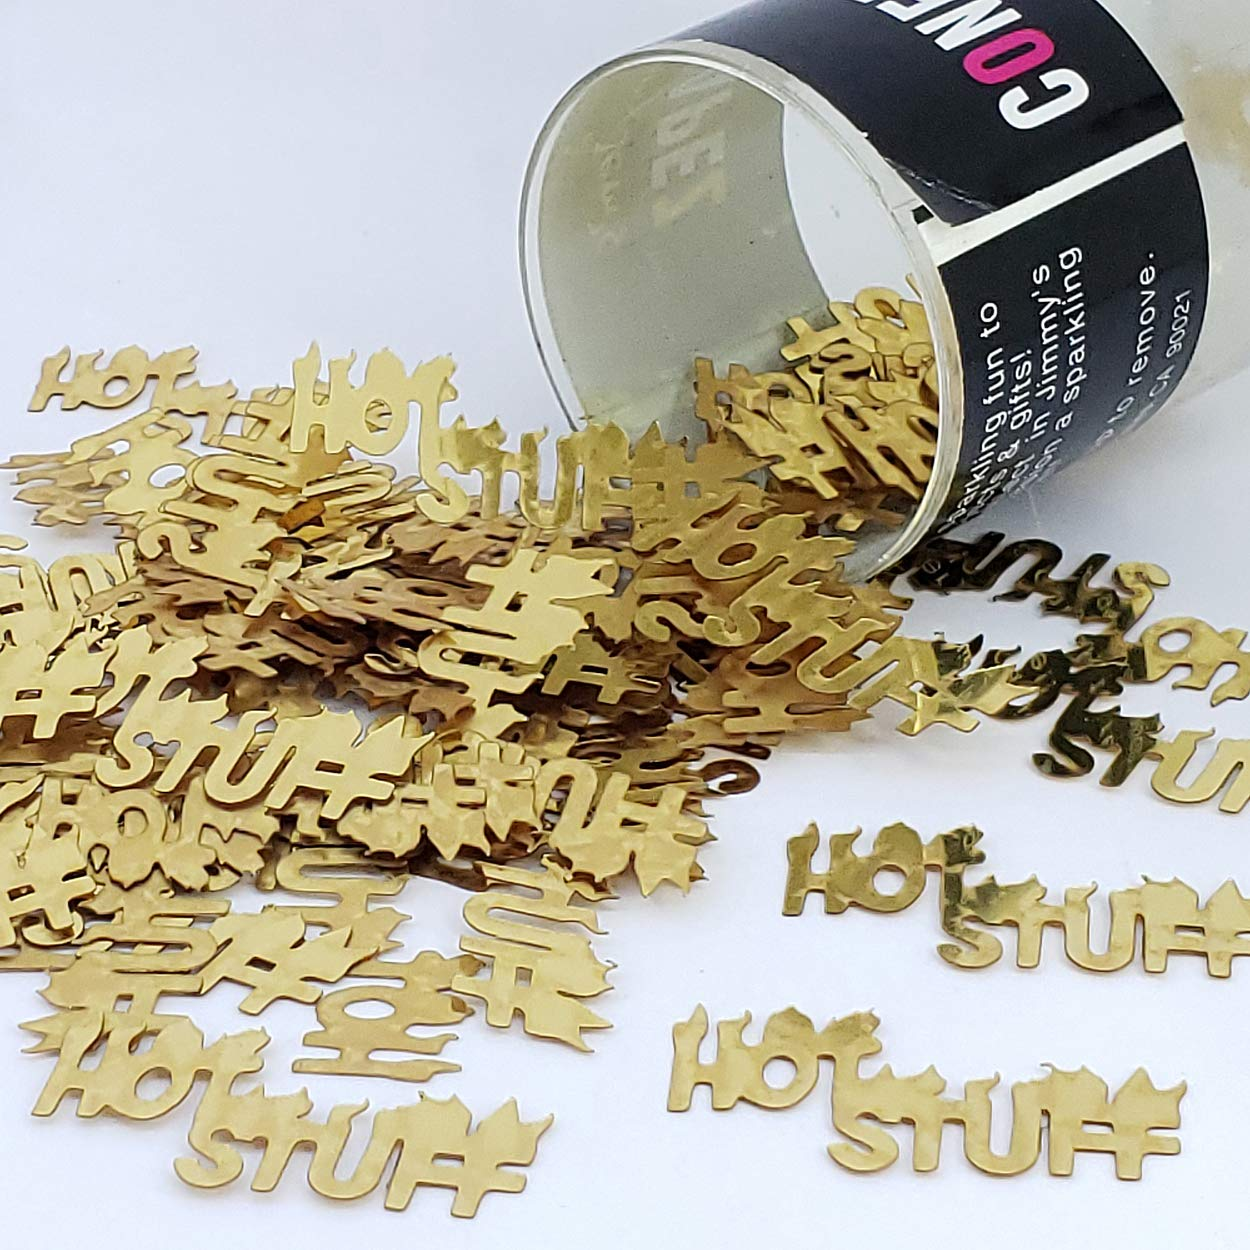 Confetti Word HOT Stuff Gold - One Pound (16 oz) Free Priority Mail (7716)